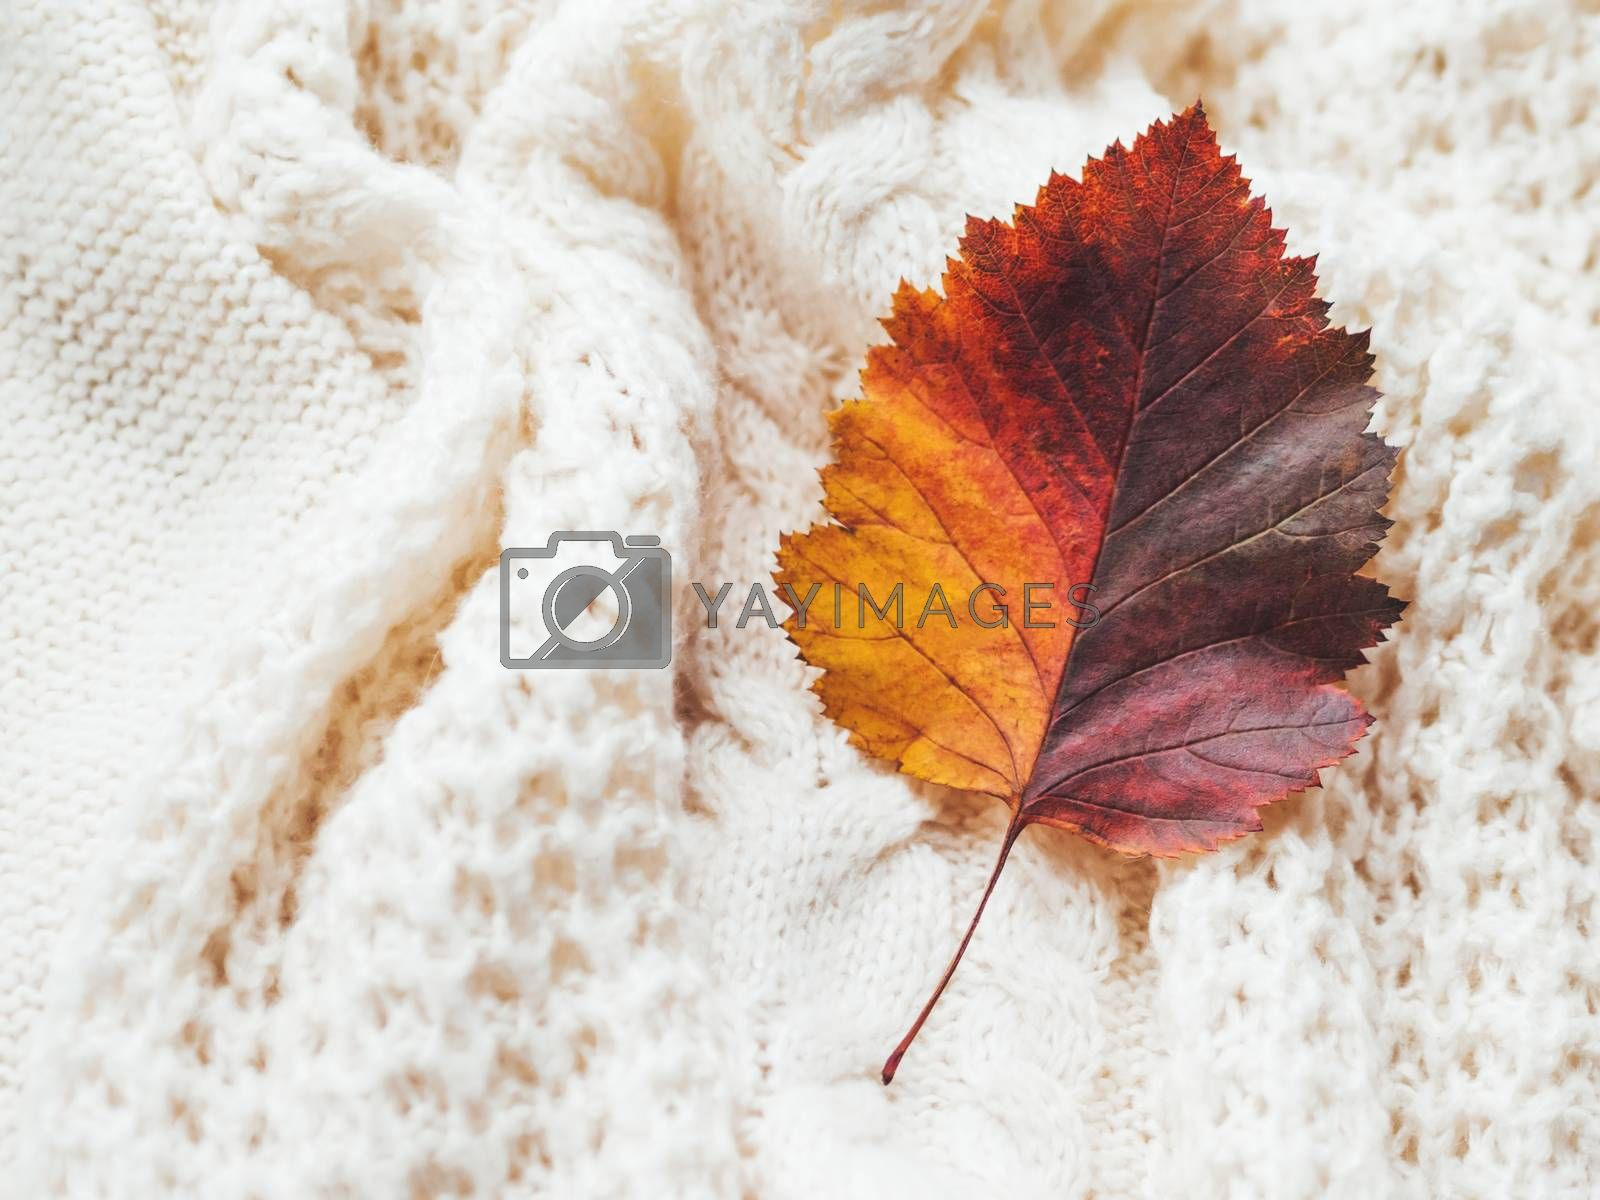 Bright and colorful autumn leaf on hand made cable-knit sweater sweater. Texture of warm knitted fabric with pattern. White crumpled cardigan. Cozy fall outfit for snuggle weather.